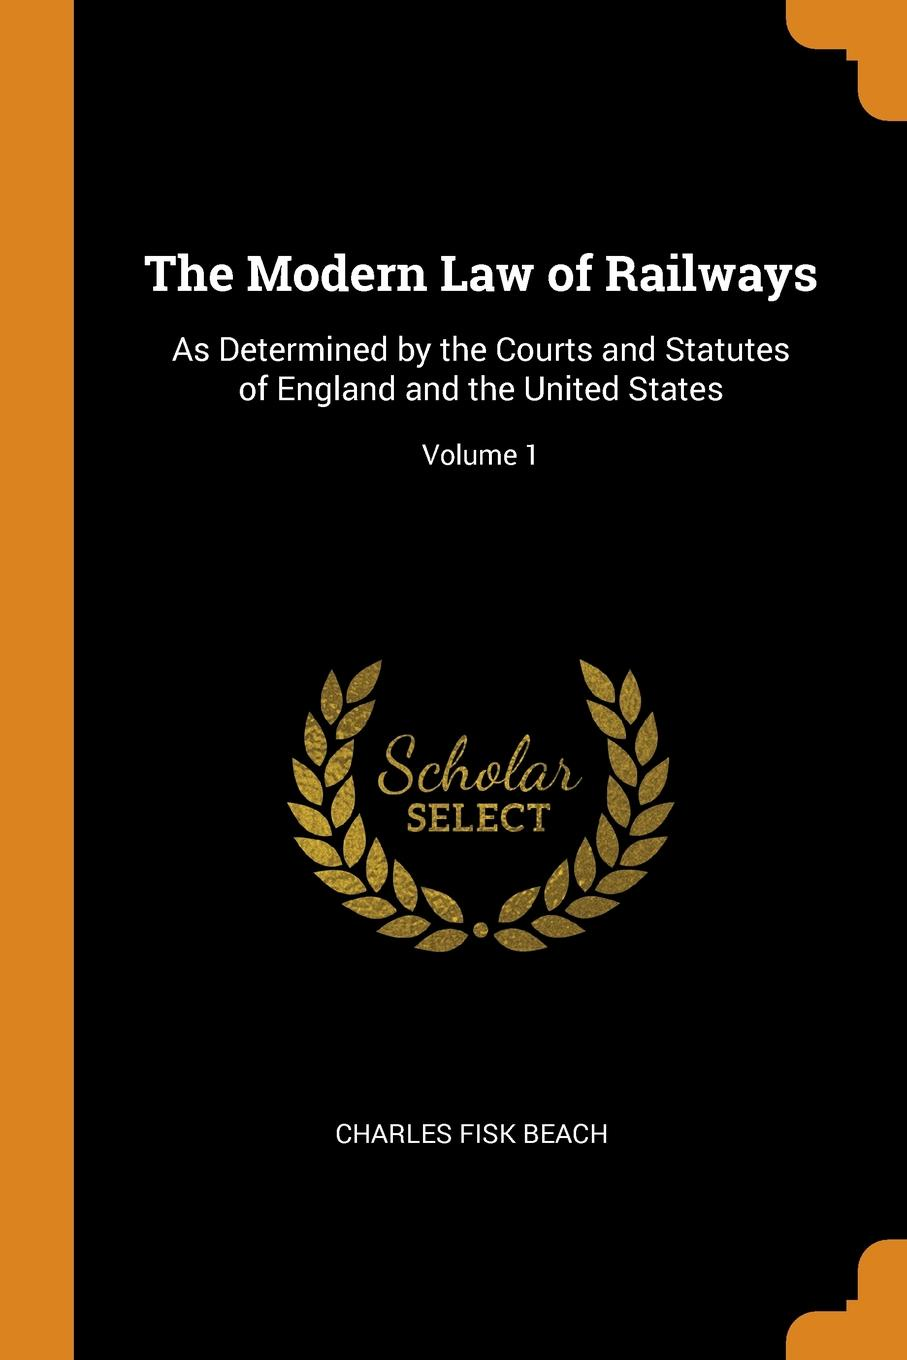 The Modern Law of Railways. As Determined by the Courts and Statutes of England and the United States; Volume 1. Charles Fisk Beach